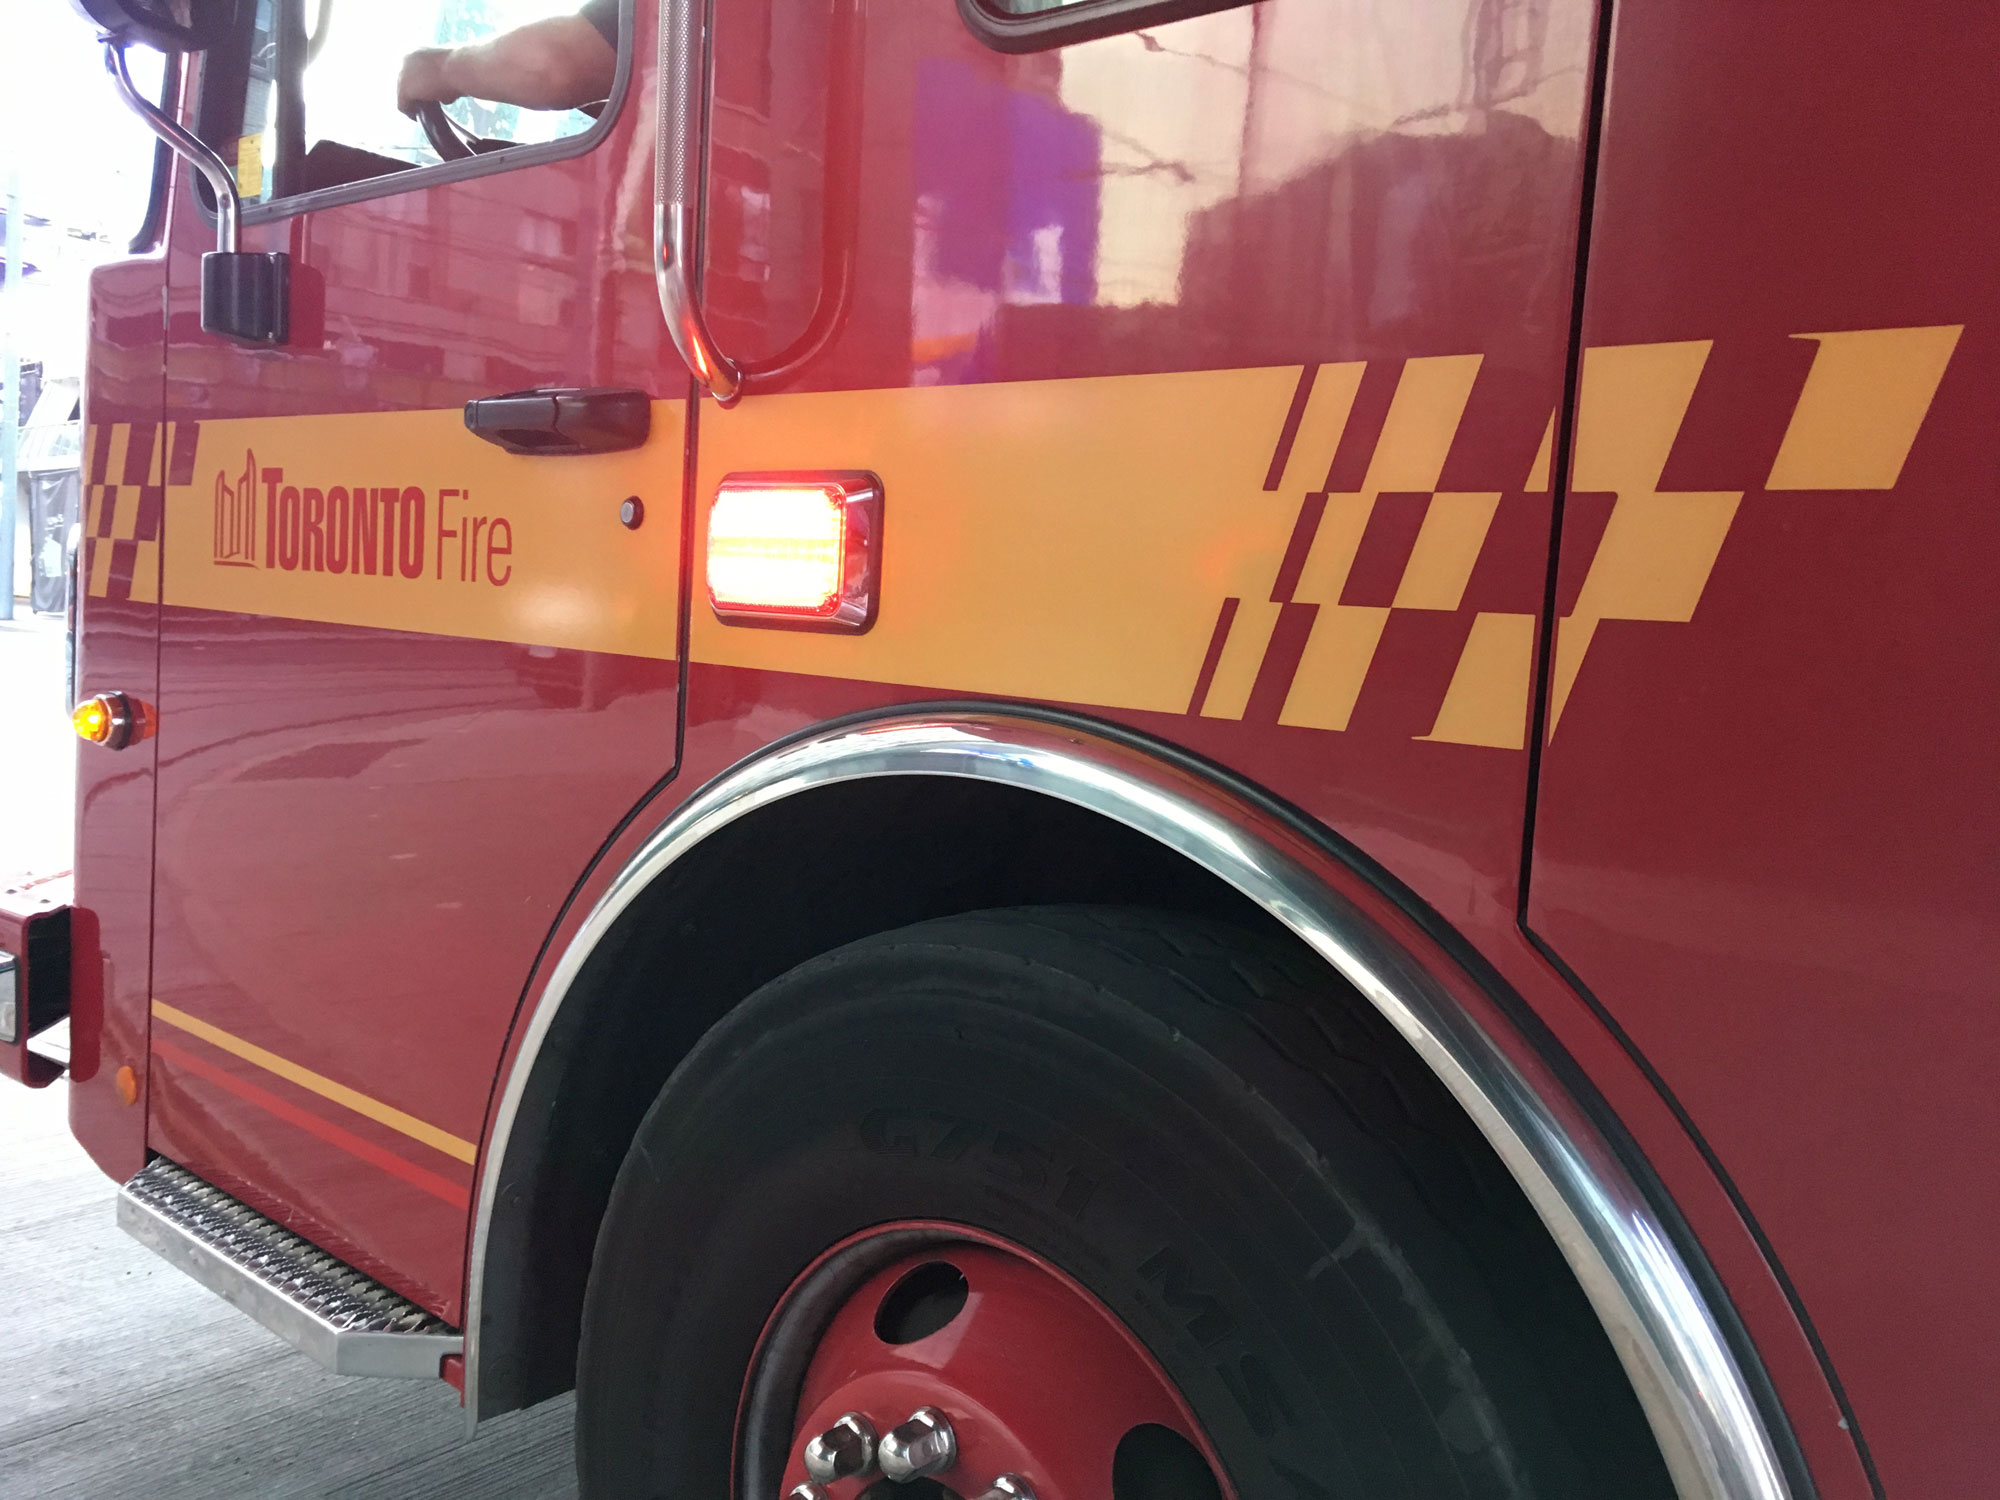 Fire protection companies convicted for multiple fire code violations